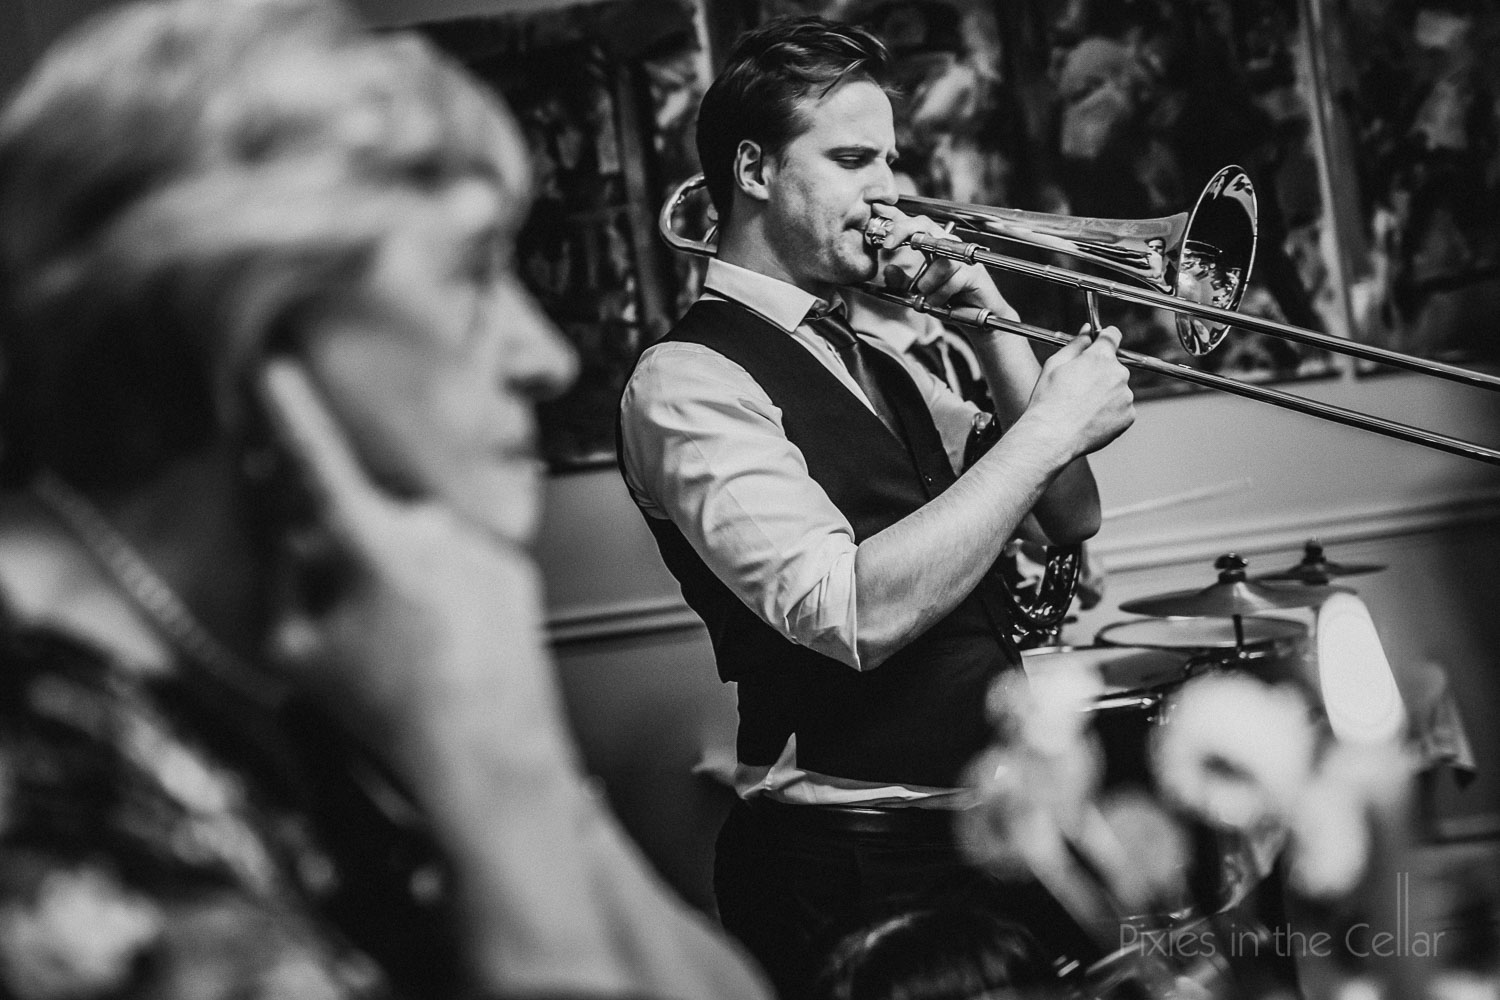 brass bands at weddings